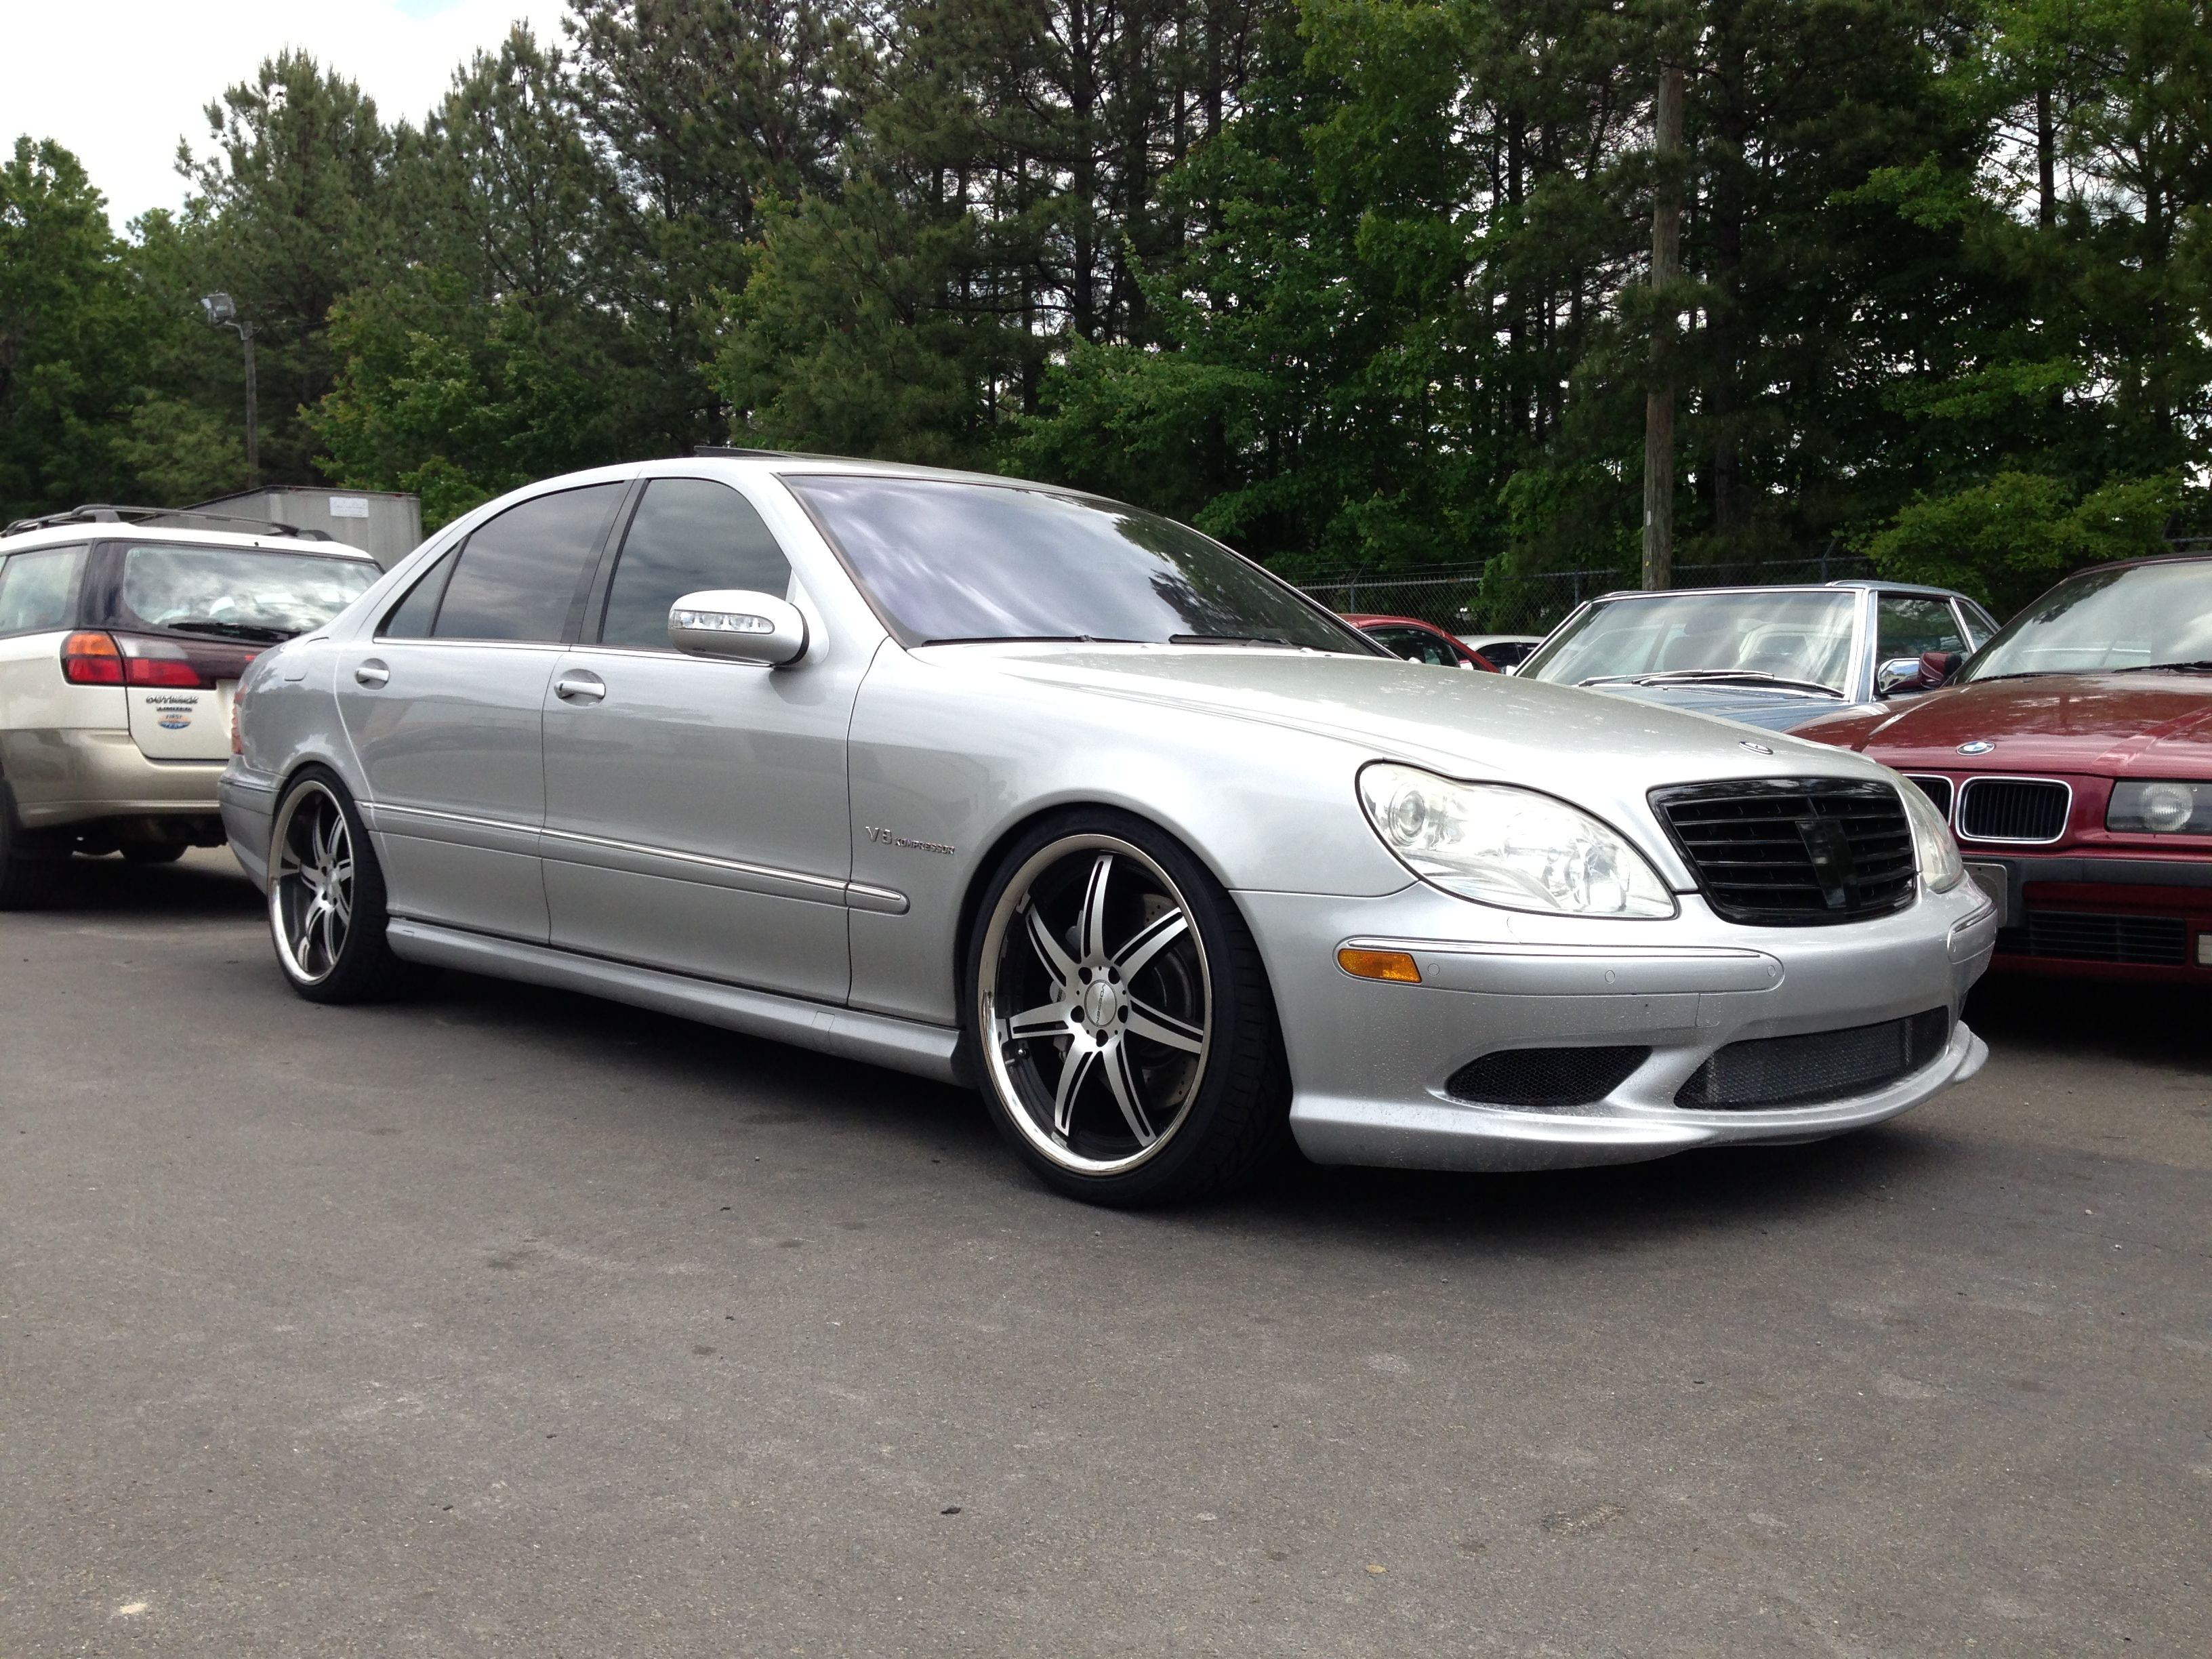 640hp S55 Amg Lowered On H Springs 20 Inch Vossens Mercedes S55 Amg Mercedes 320 Mercedes Benz